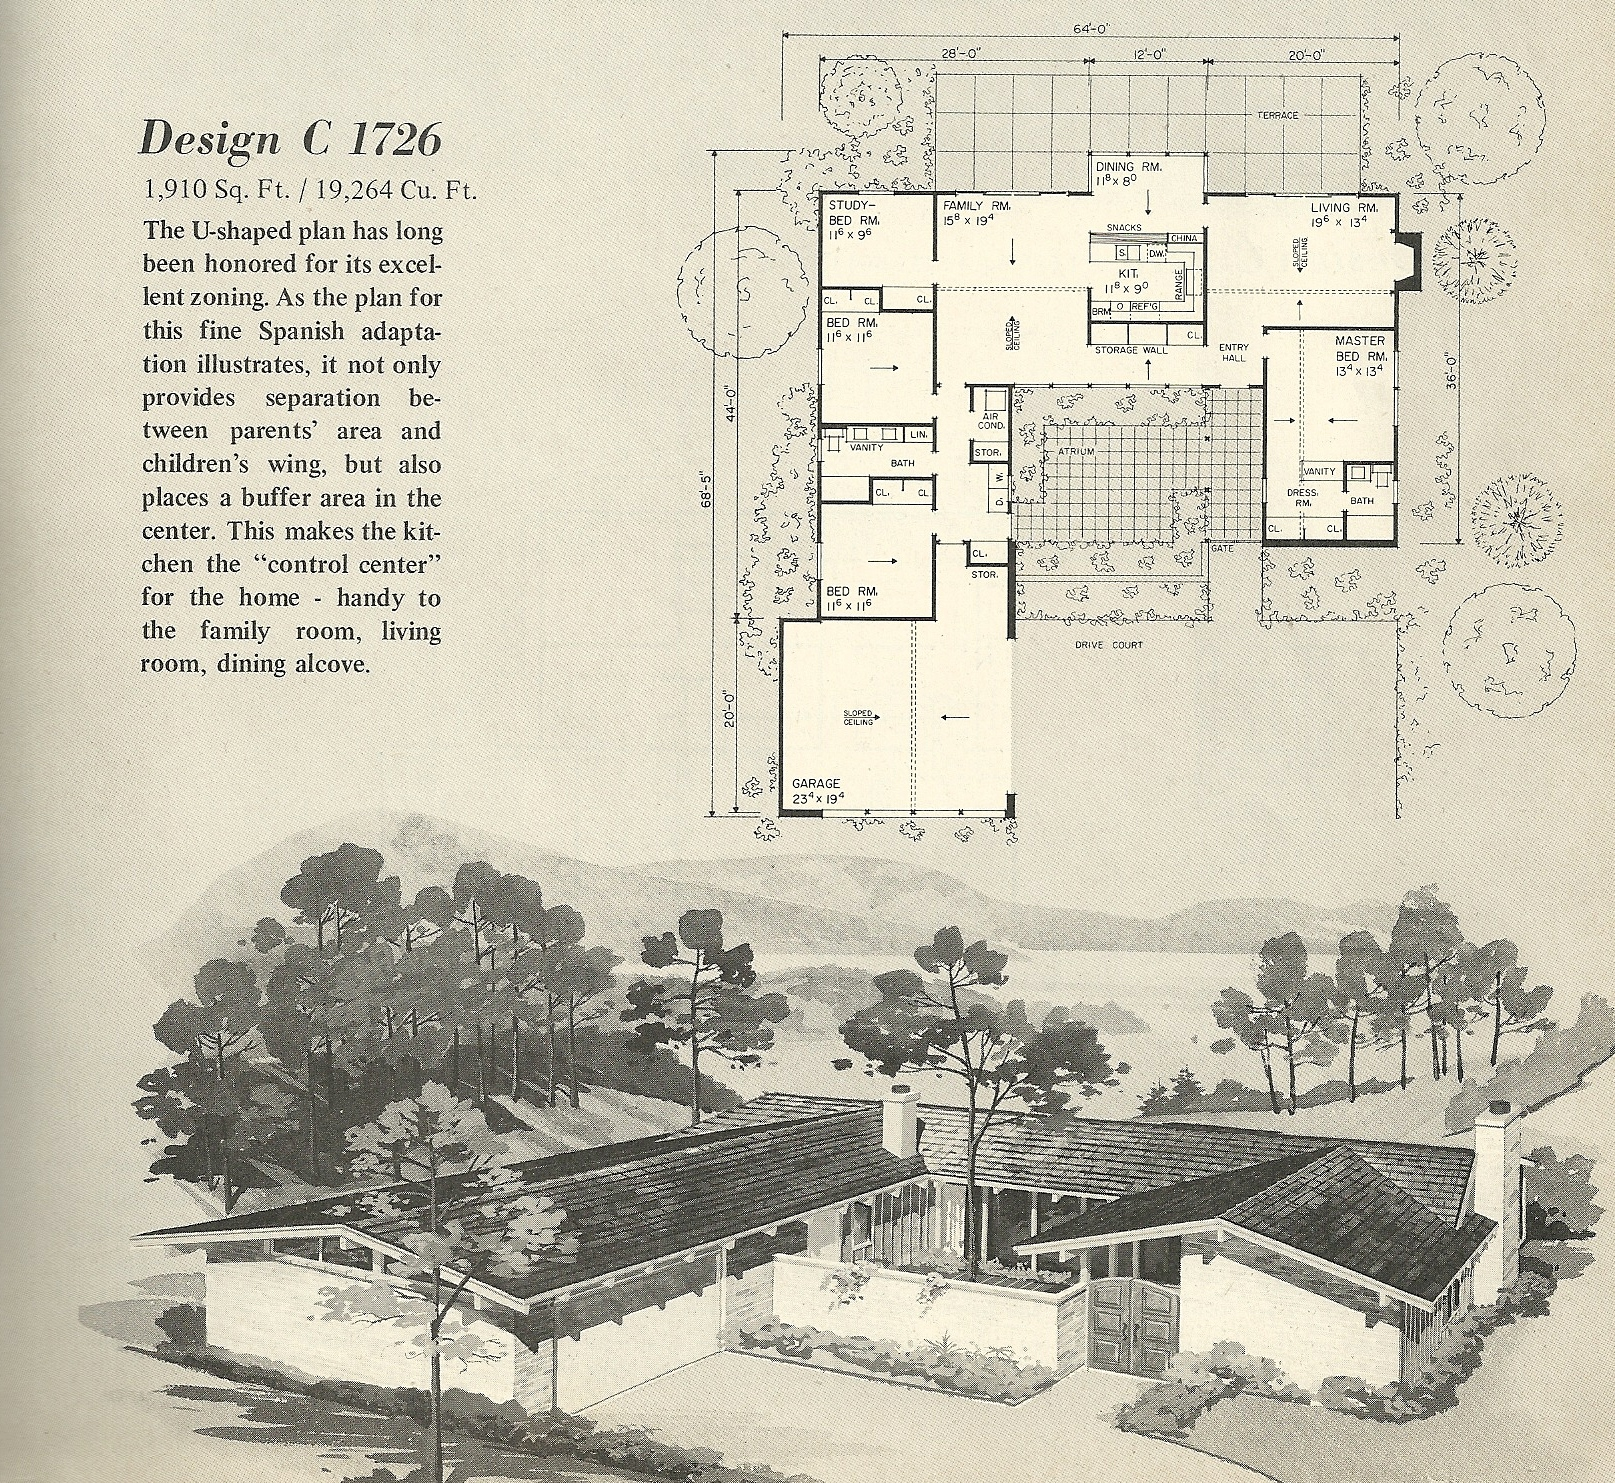 Vintage house plans 1726 antique alter ego for Mid century modern home floor plans